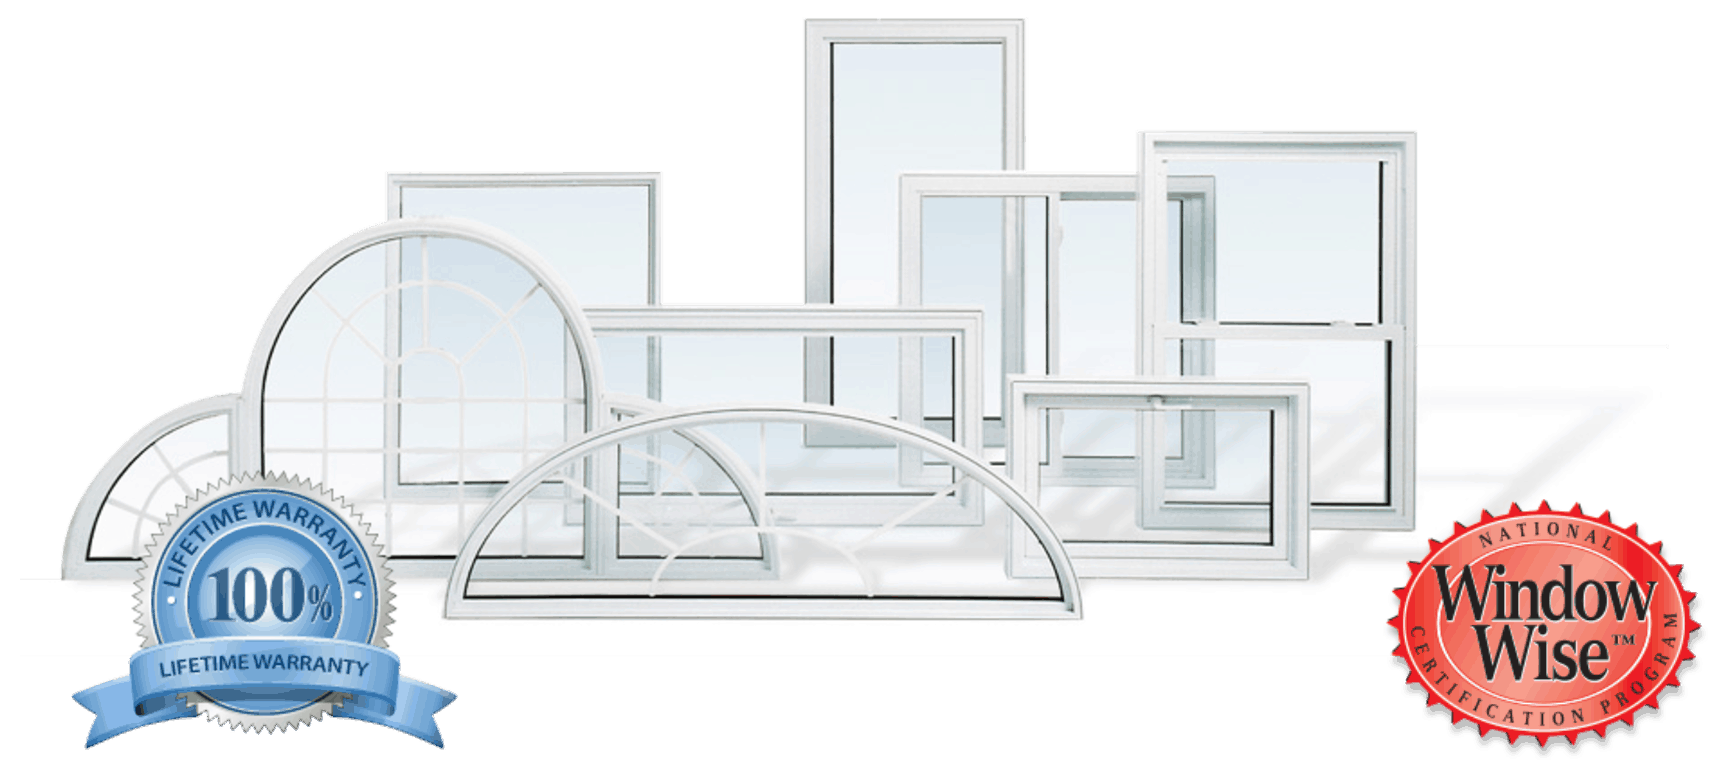 Various Window Styles with Guarantee and Window Wise Trust Seals